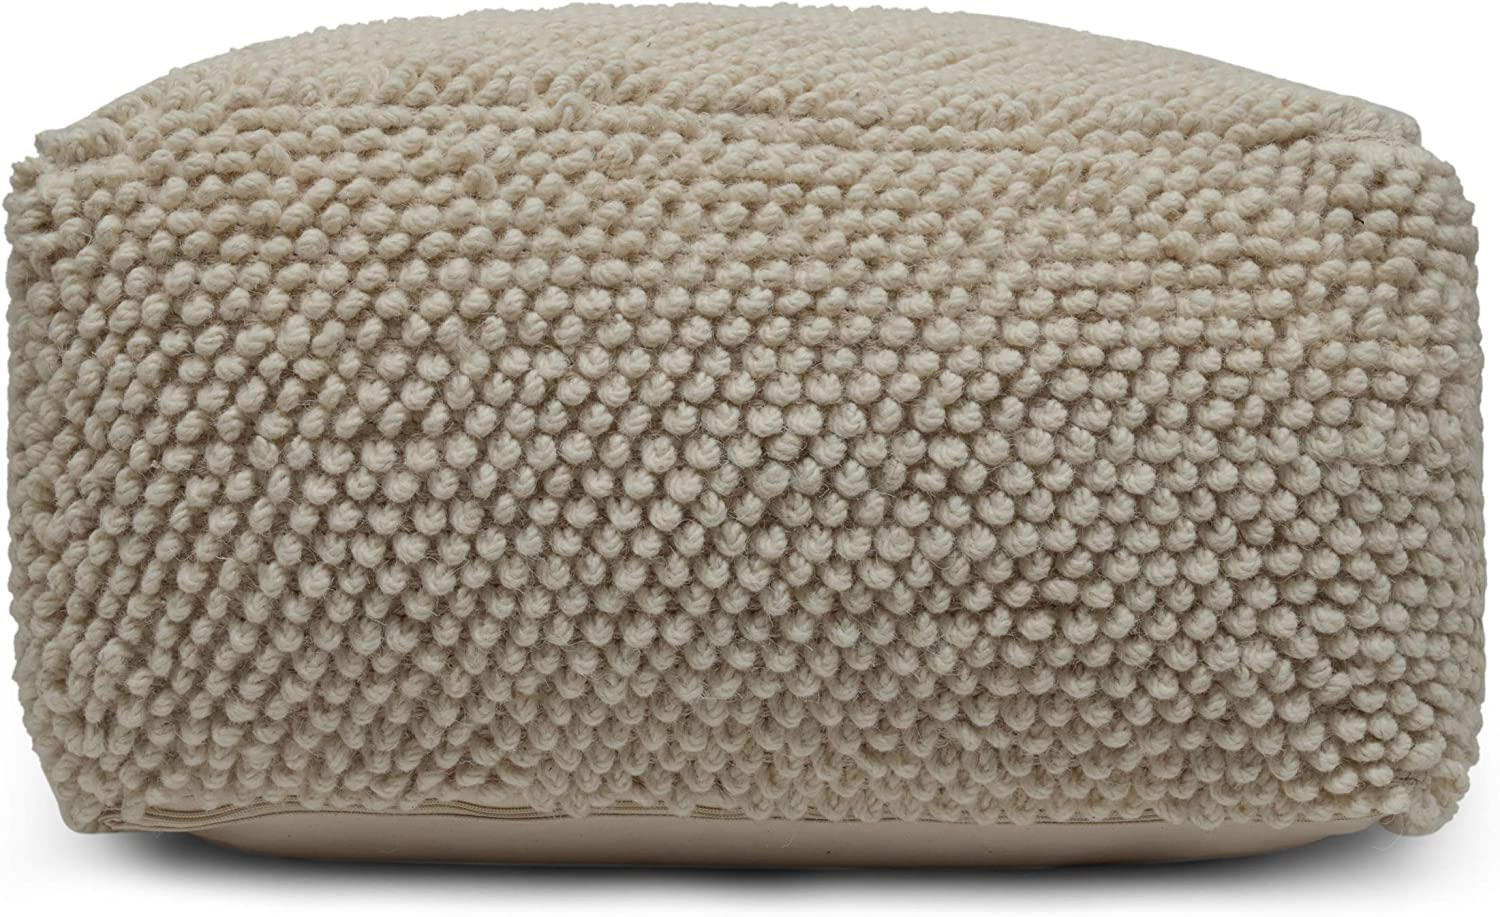 Christopher Knight Home Stene Pouf Challenge the 1 year warranty lowest price of Japan ☆ Ivory